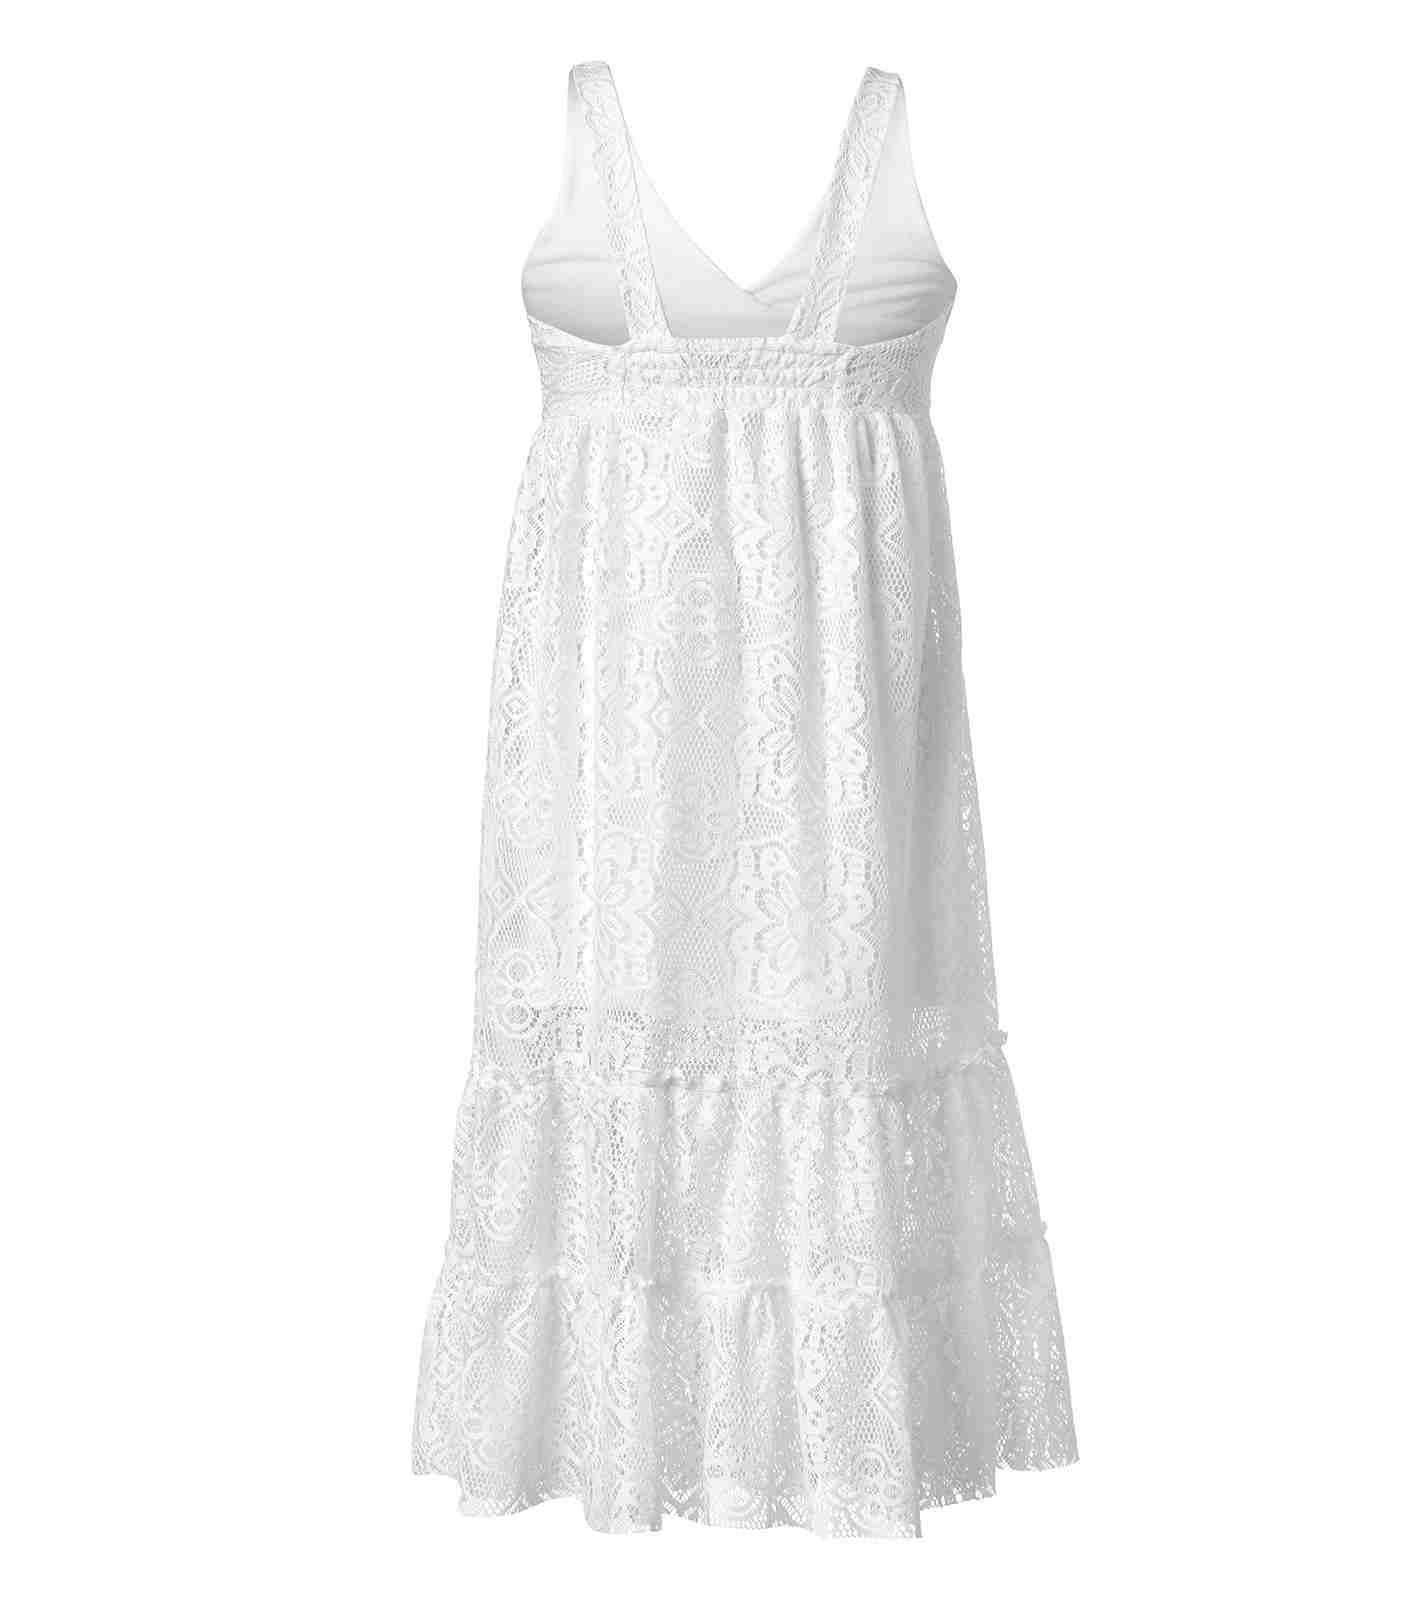 Maxi Lace Summer Dress for Girls